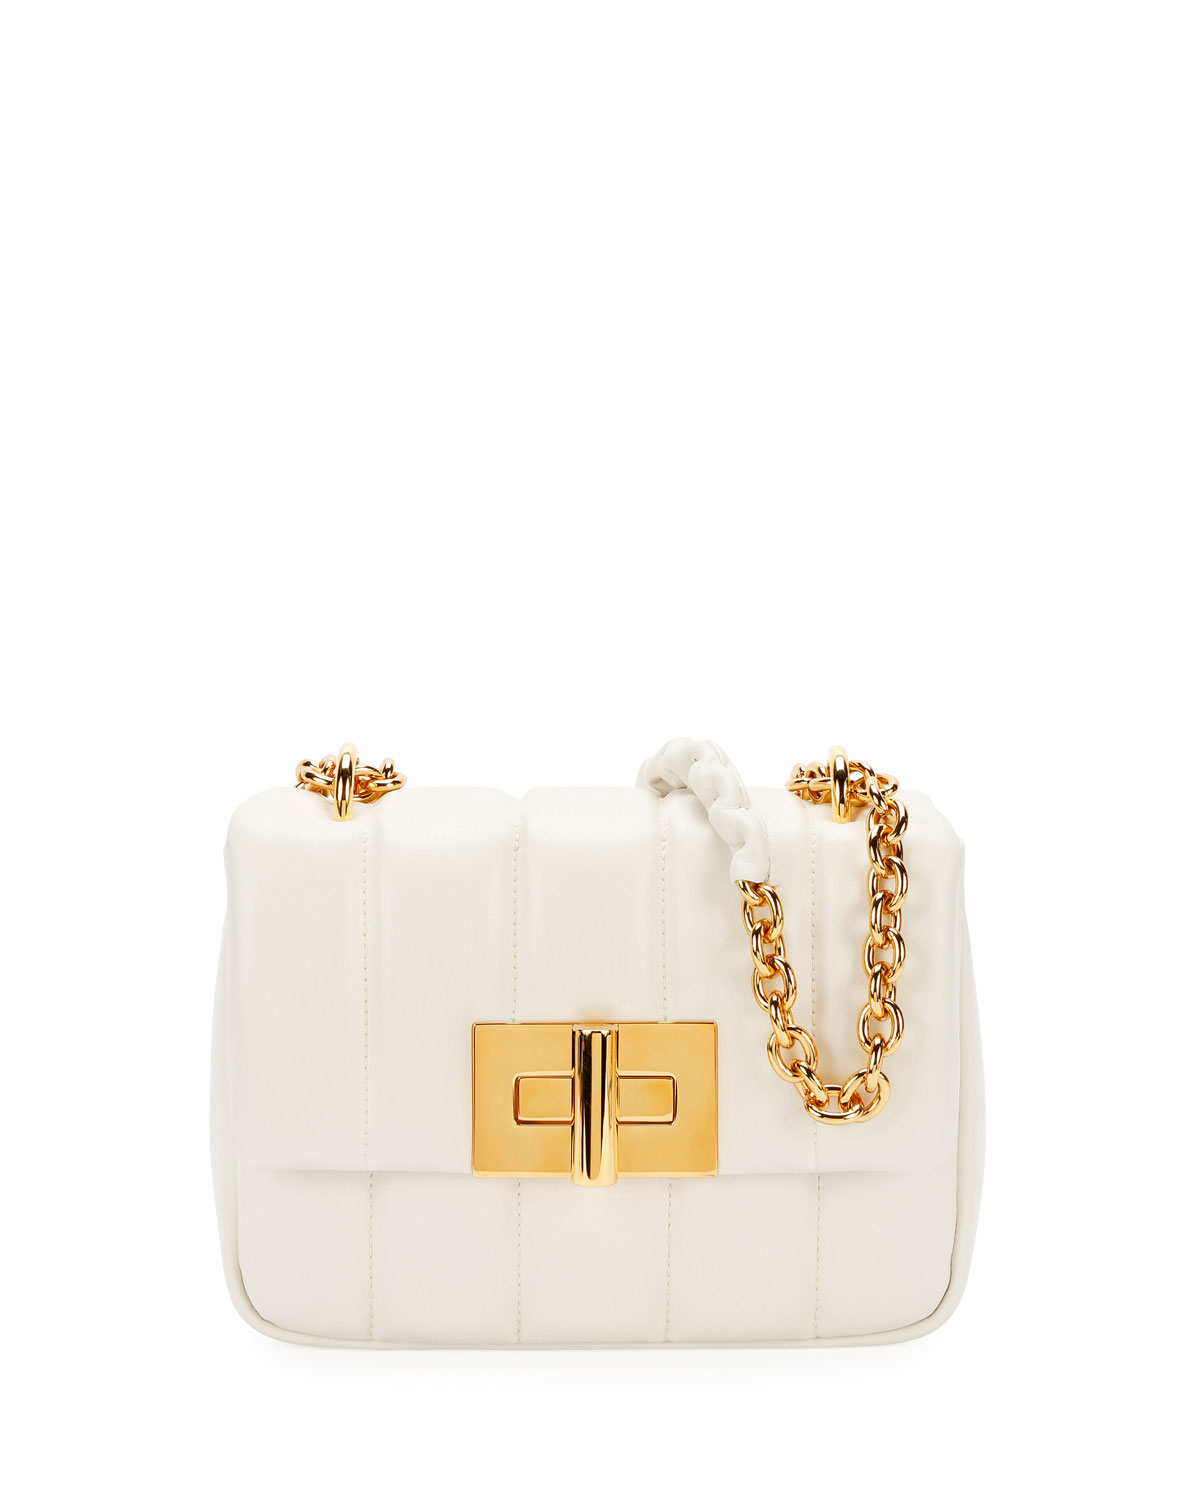 c54a4d4b780a2 TOM FORD Natalia Small Soft Leather Shoulder Bag